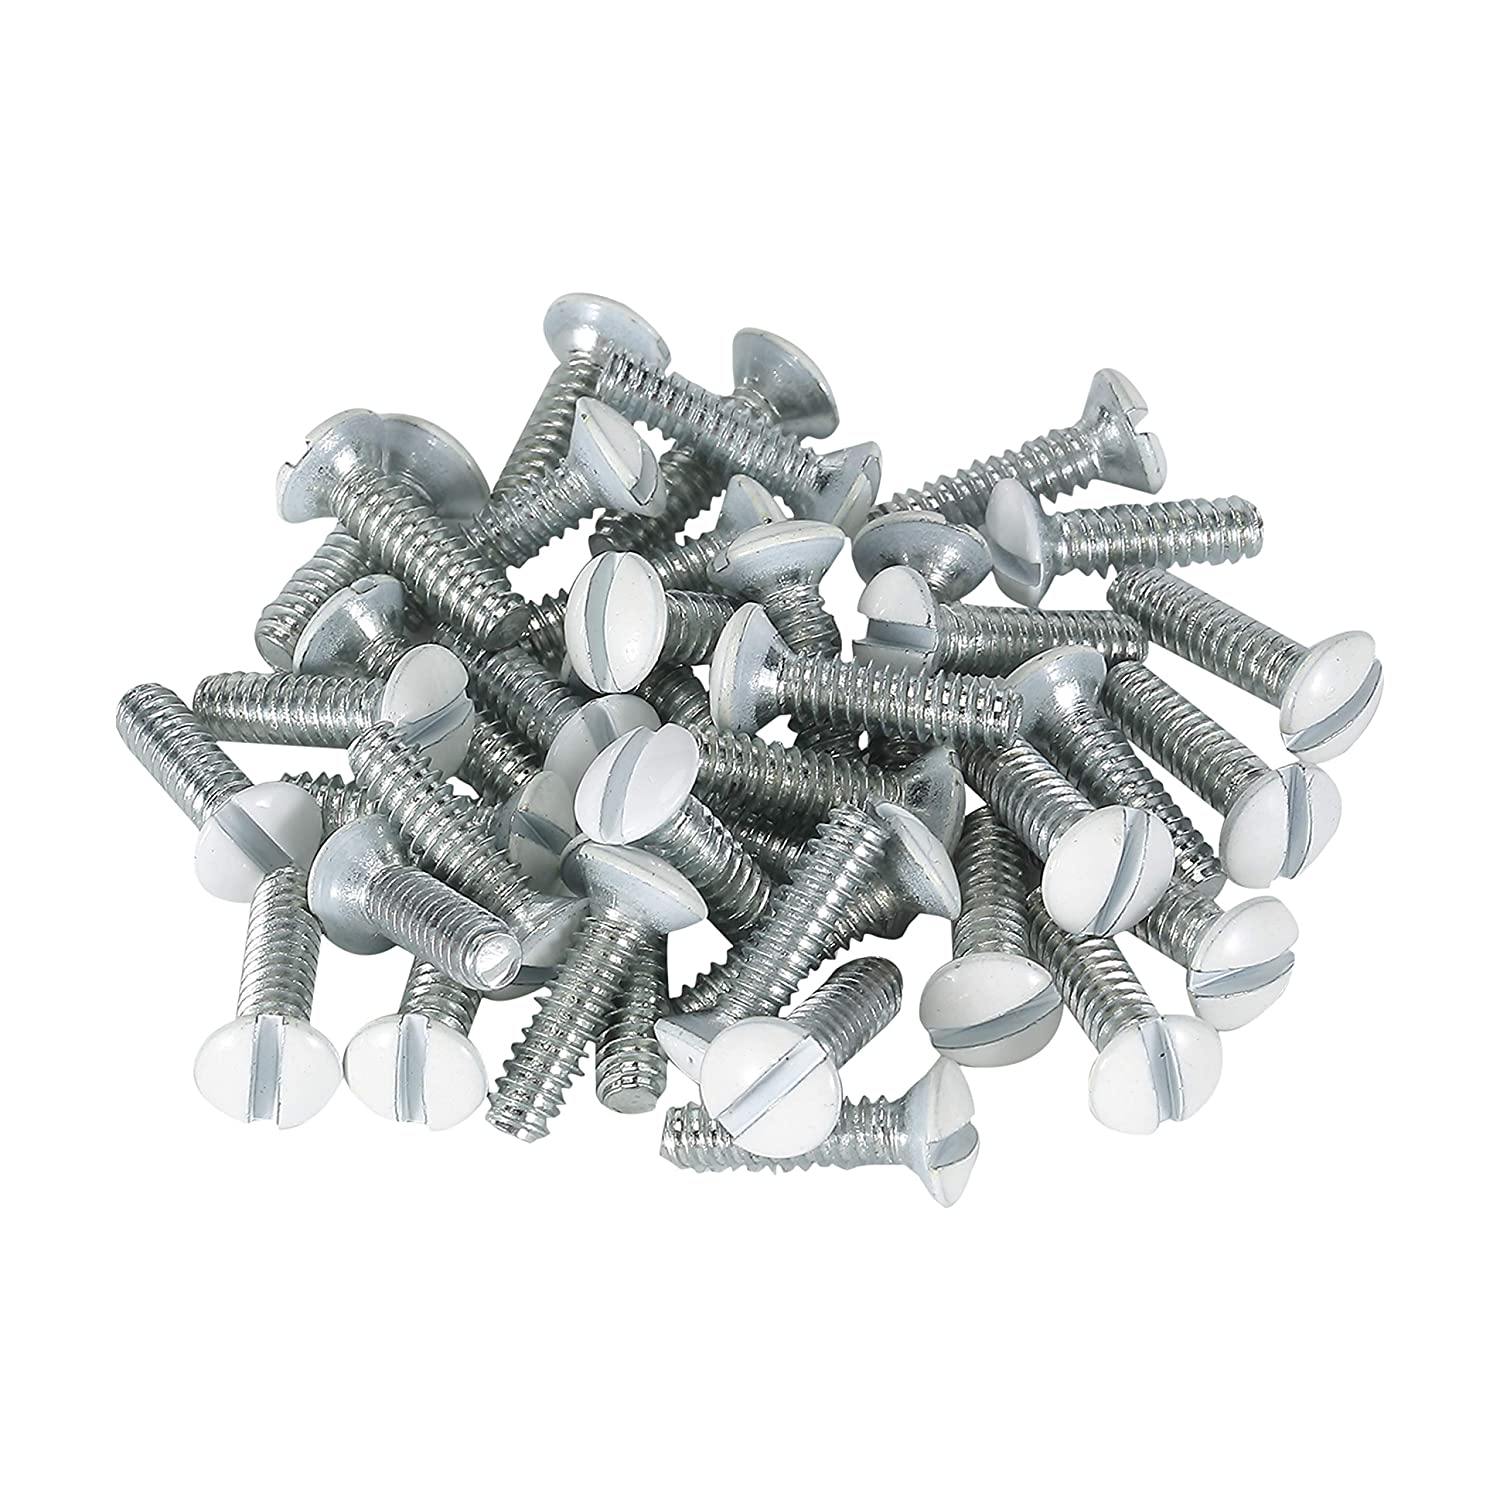 Bates- Wall Plate Screws, 75 Pcs, Assorted Size, Outlet Screws, Wall Plate Screws White, Outlet Cover Screws White, Long Electrical Outlet Screws, Electrical Screw, Outlet Plate Screws